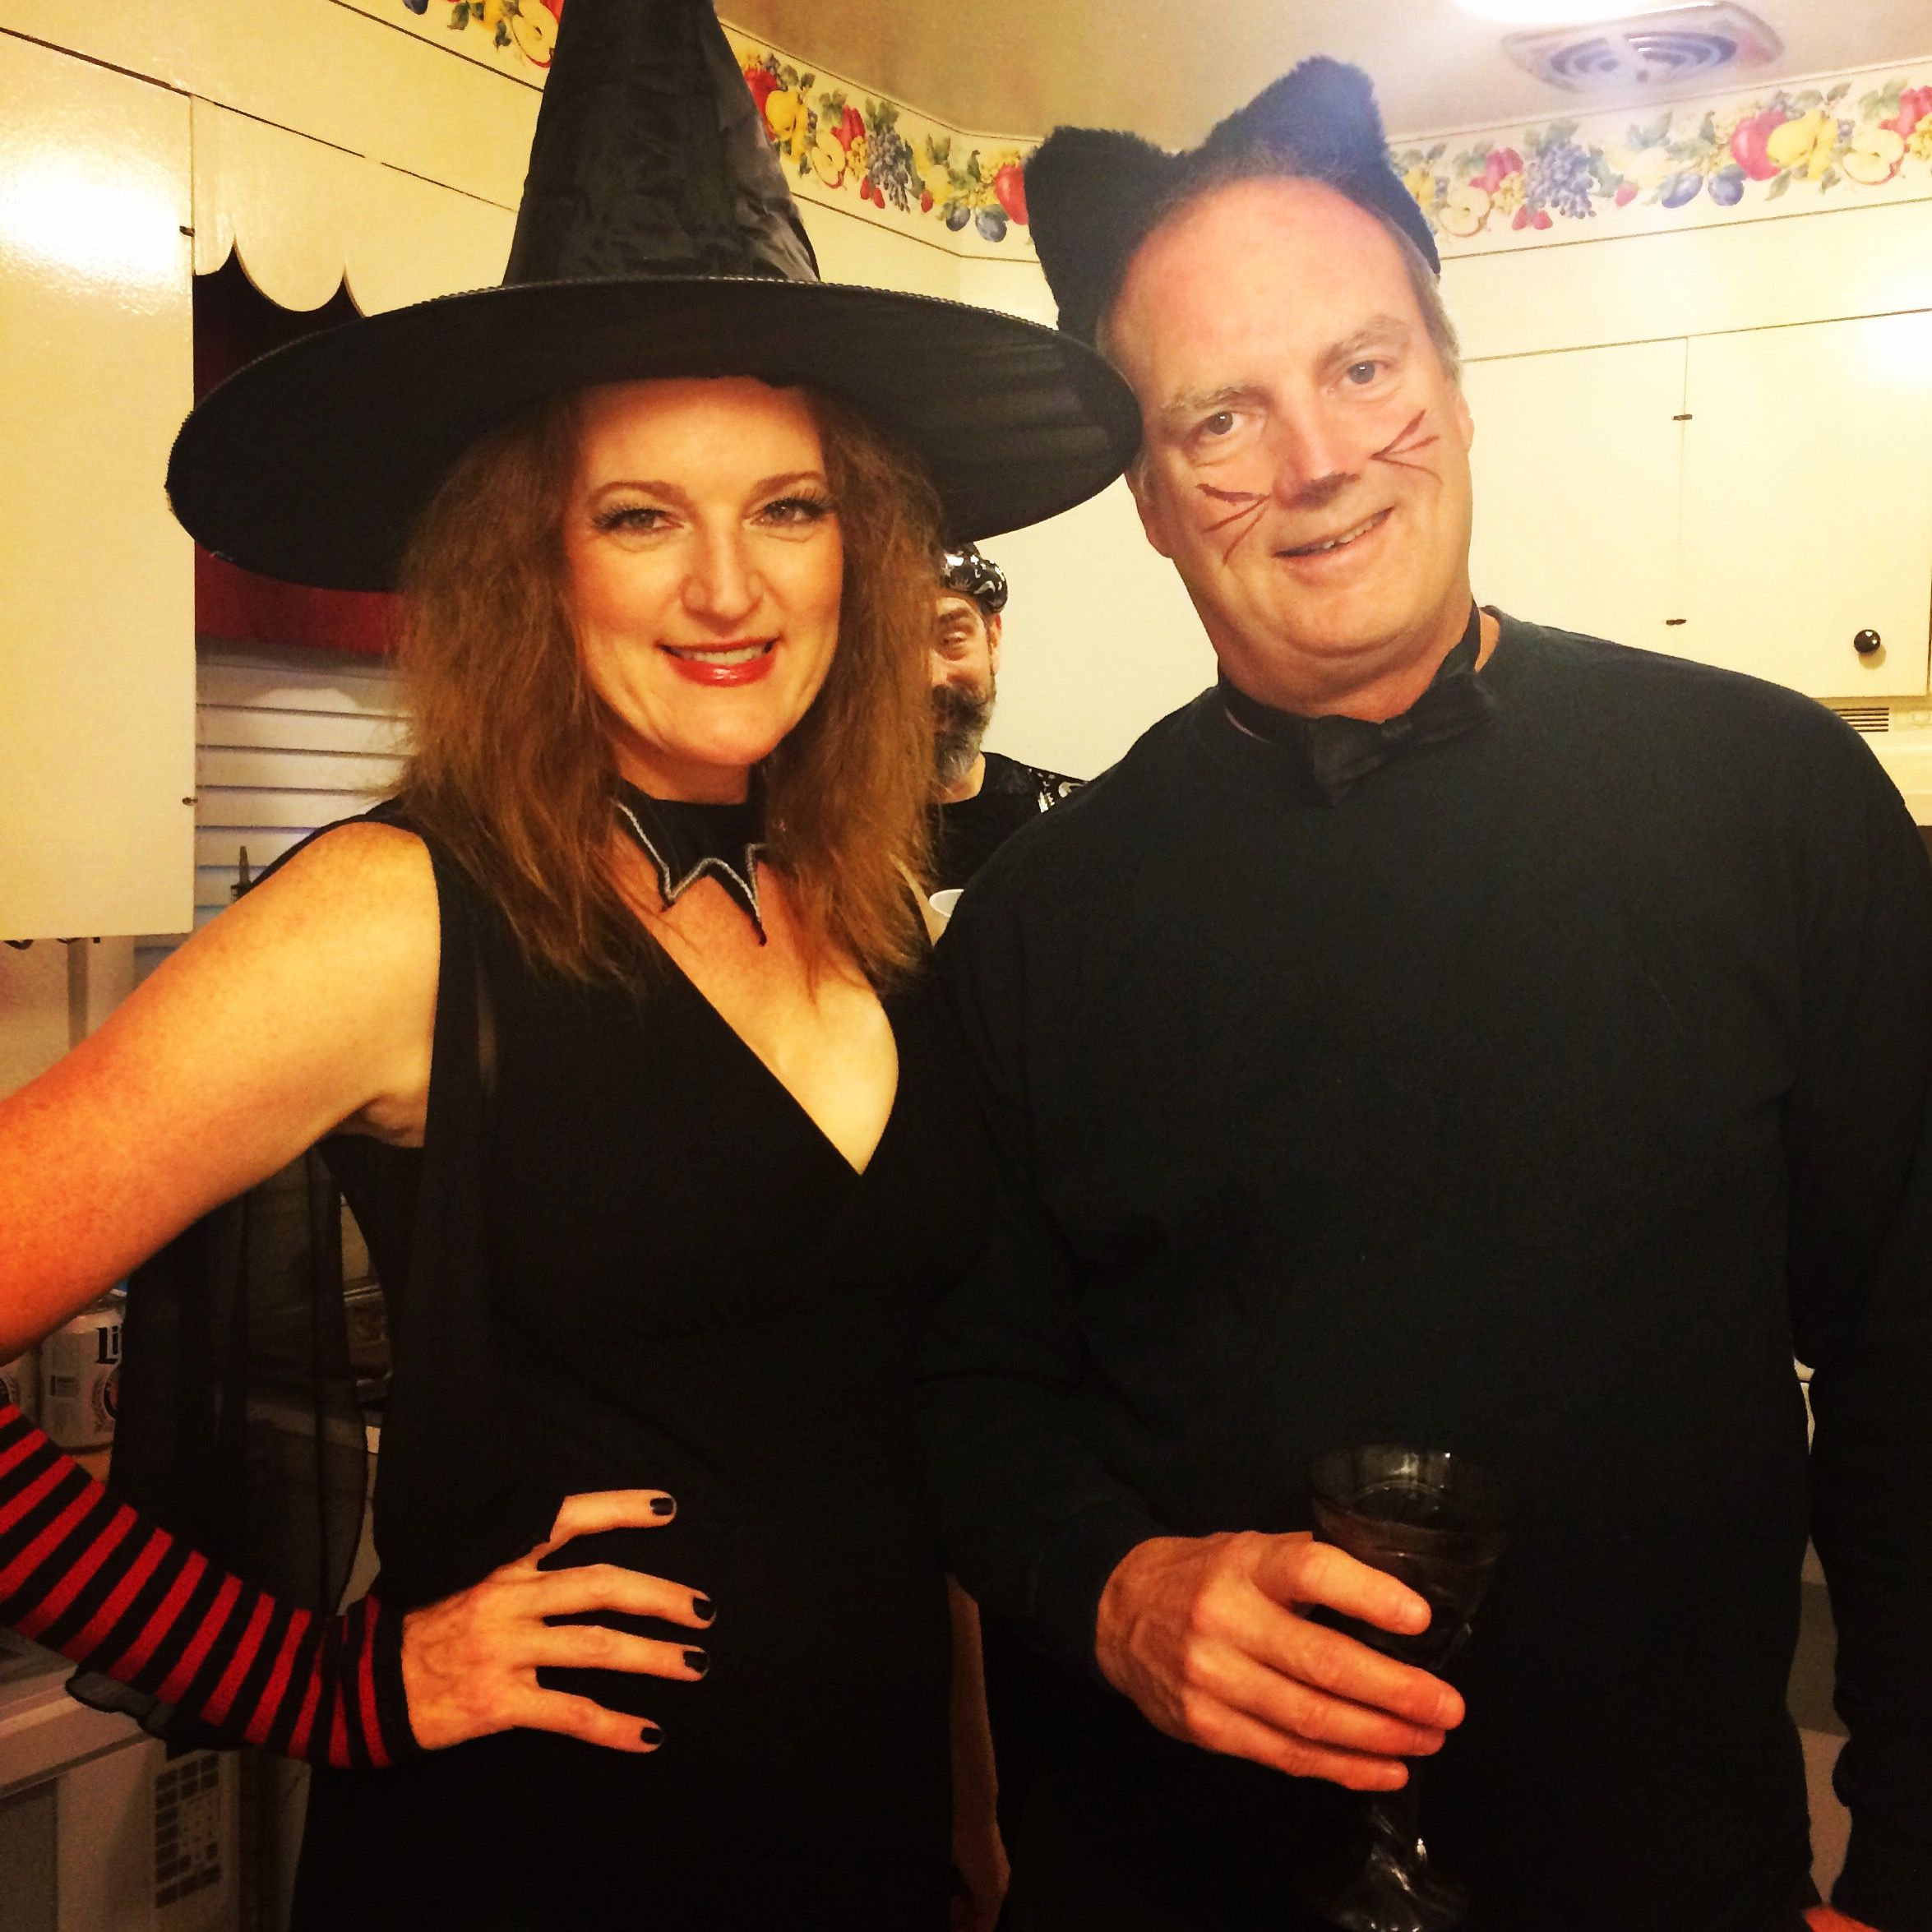 Diy Witch And Black Cat Couples Costume Couples Costumes Couple Halloween Couple Halloween Costumes